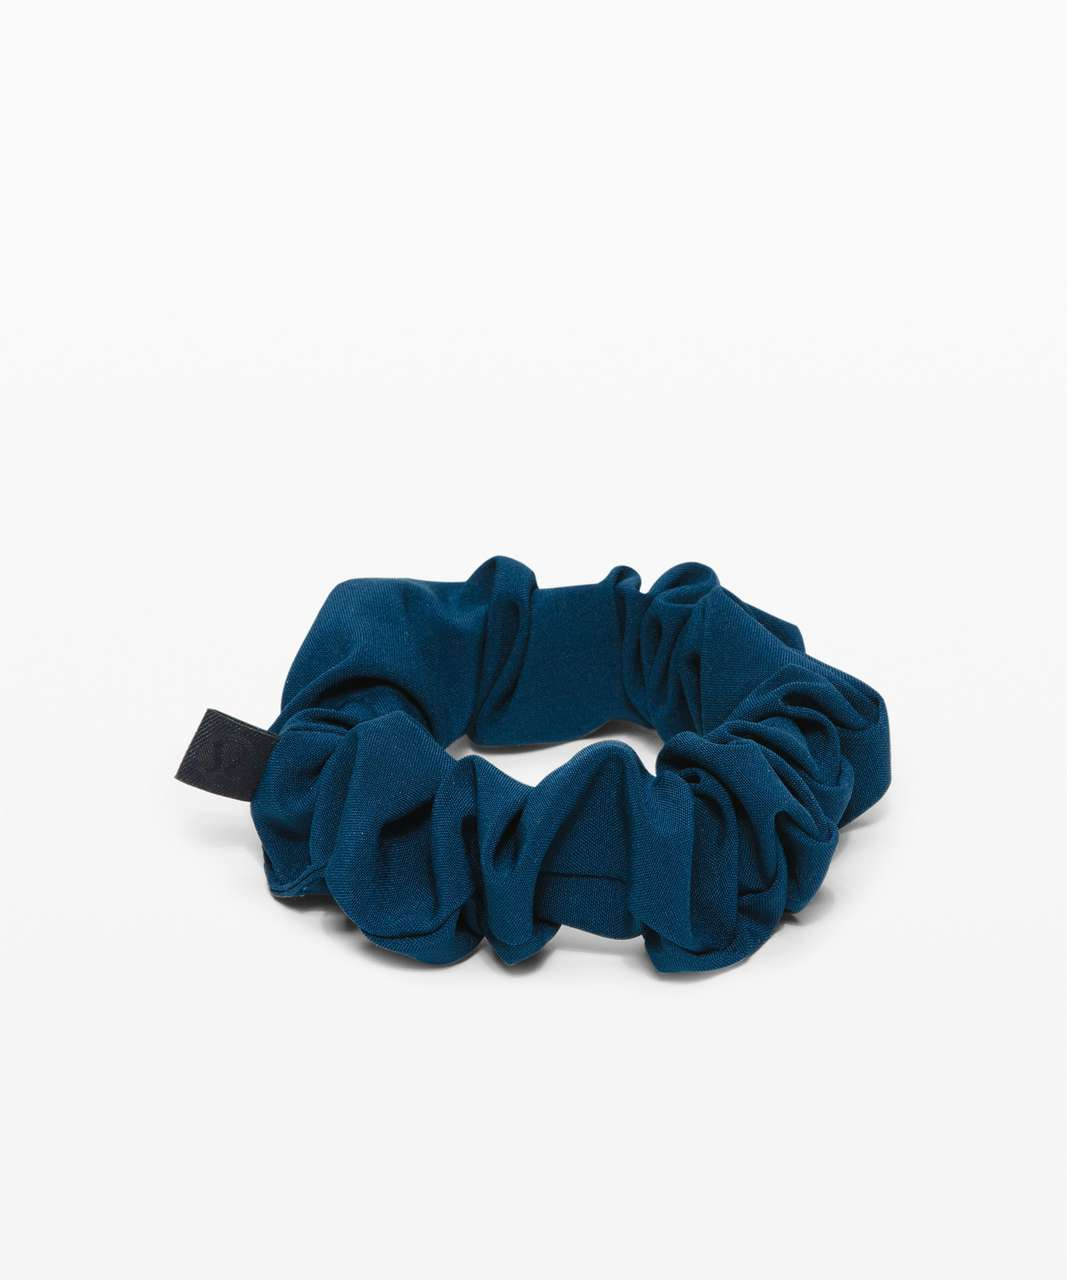 Lululemon Uplifting Scrunchie - Night Tide